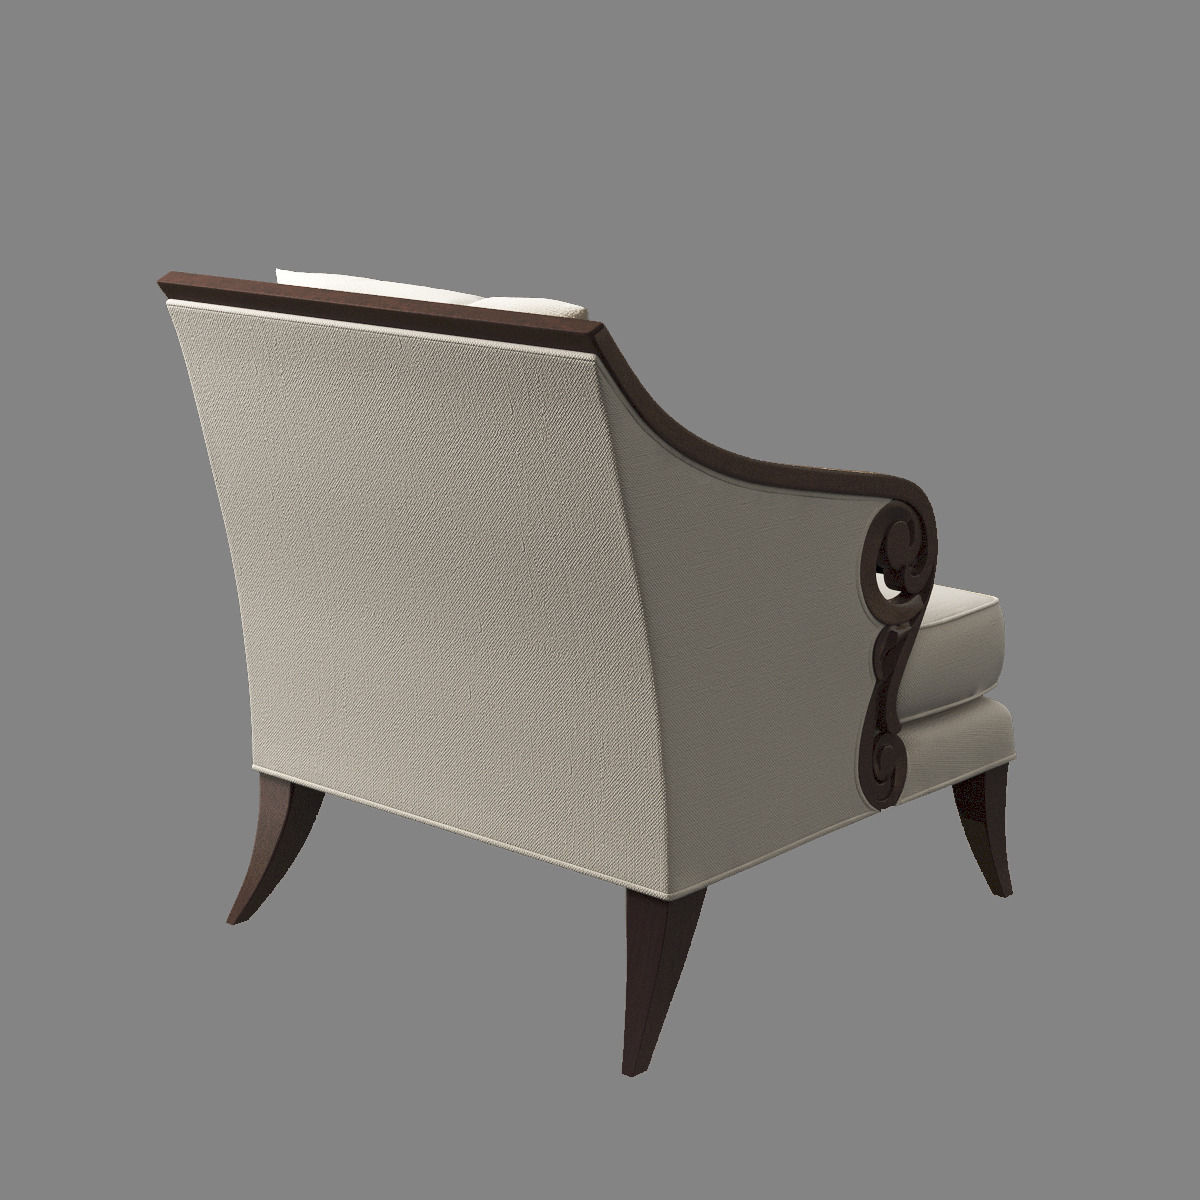 Christopher Guy Jude Chair 3d Model Max Cgtrader Com